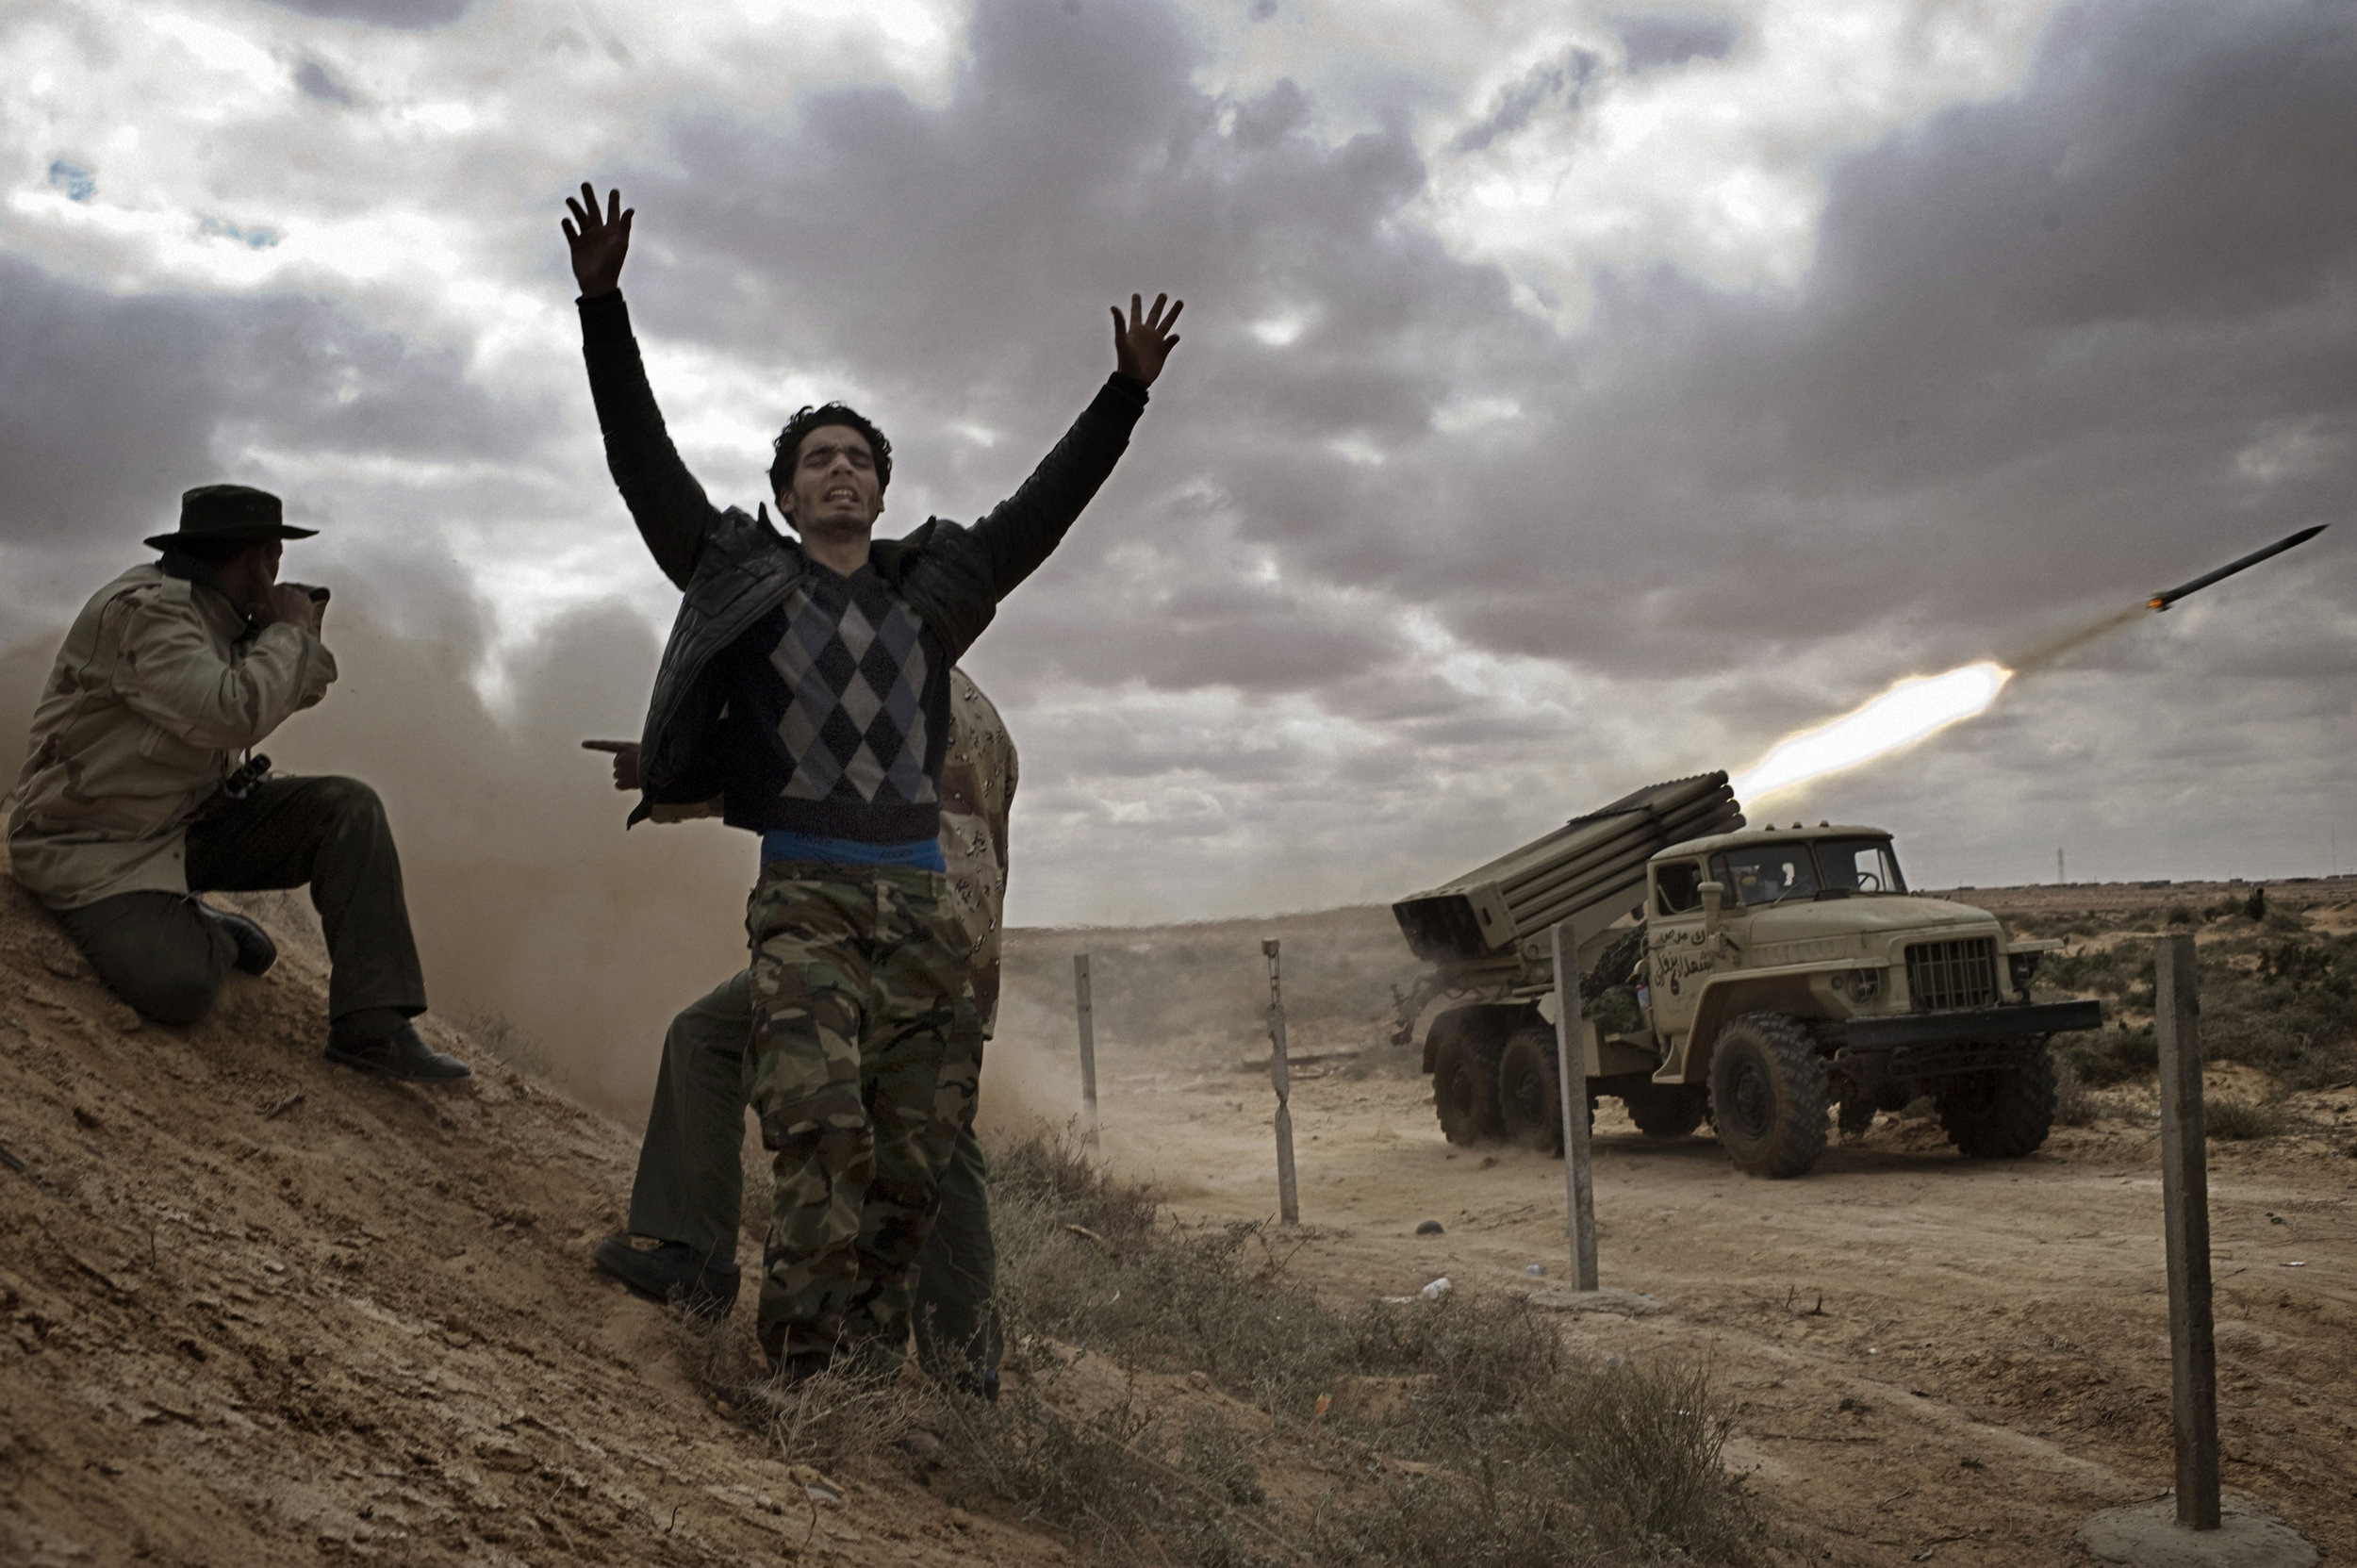 RAS LANUF, LIBYA - MARCH 09: Libyan rebels fire Katyusha rockets at government troops on the frontline